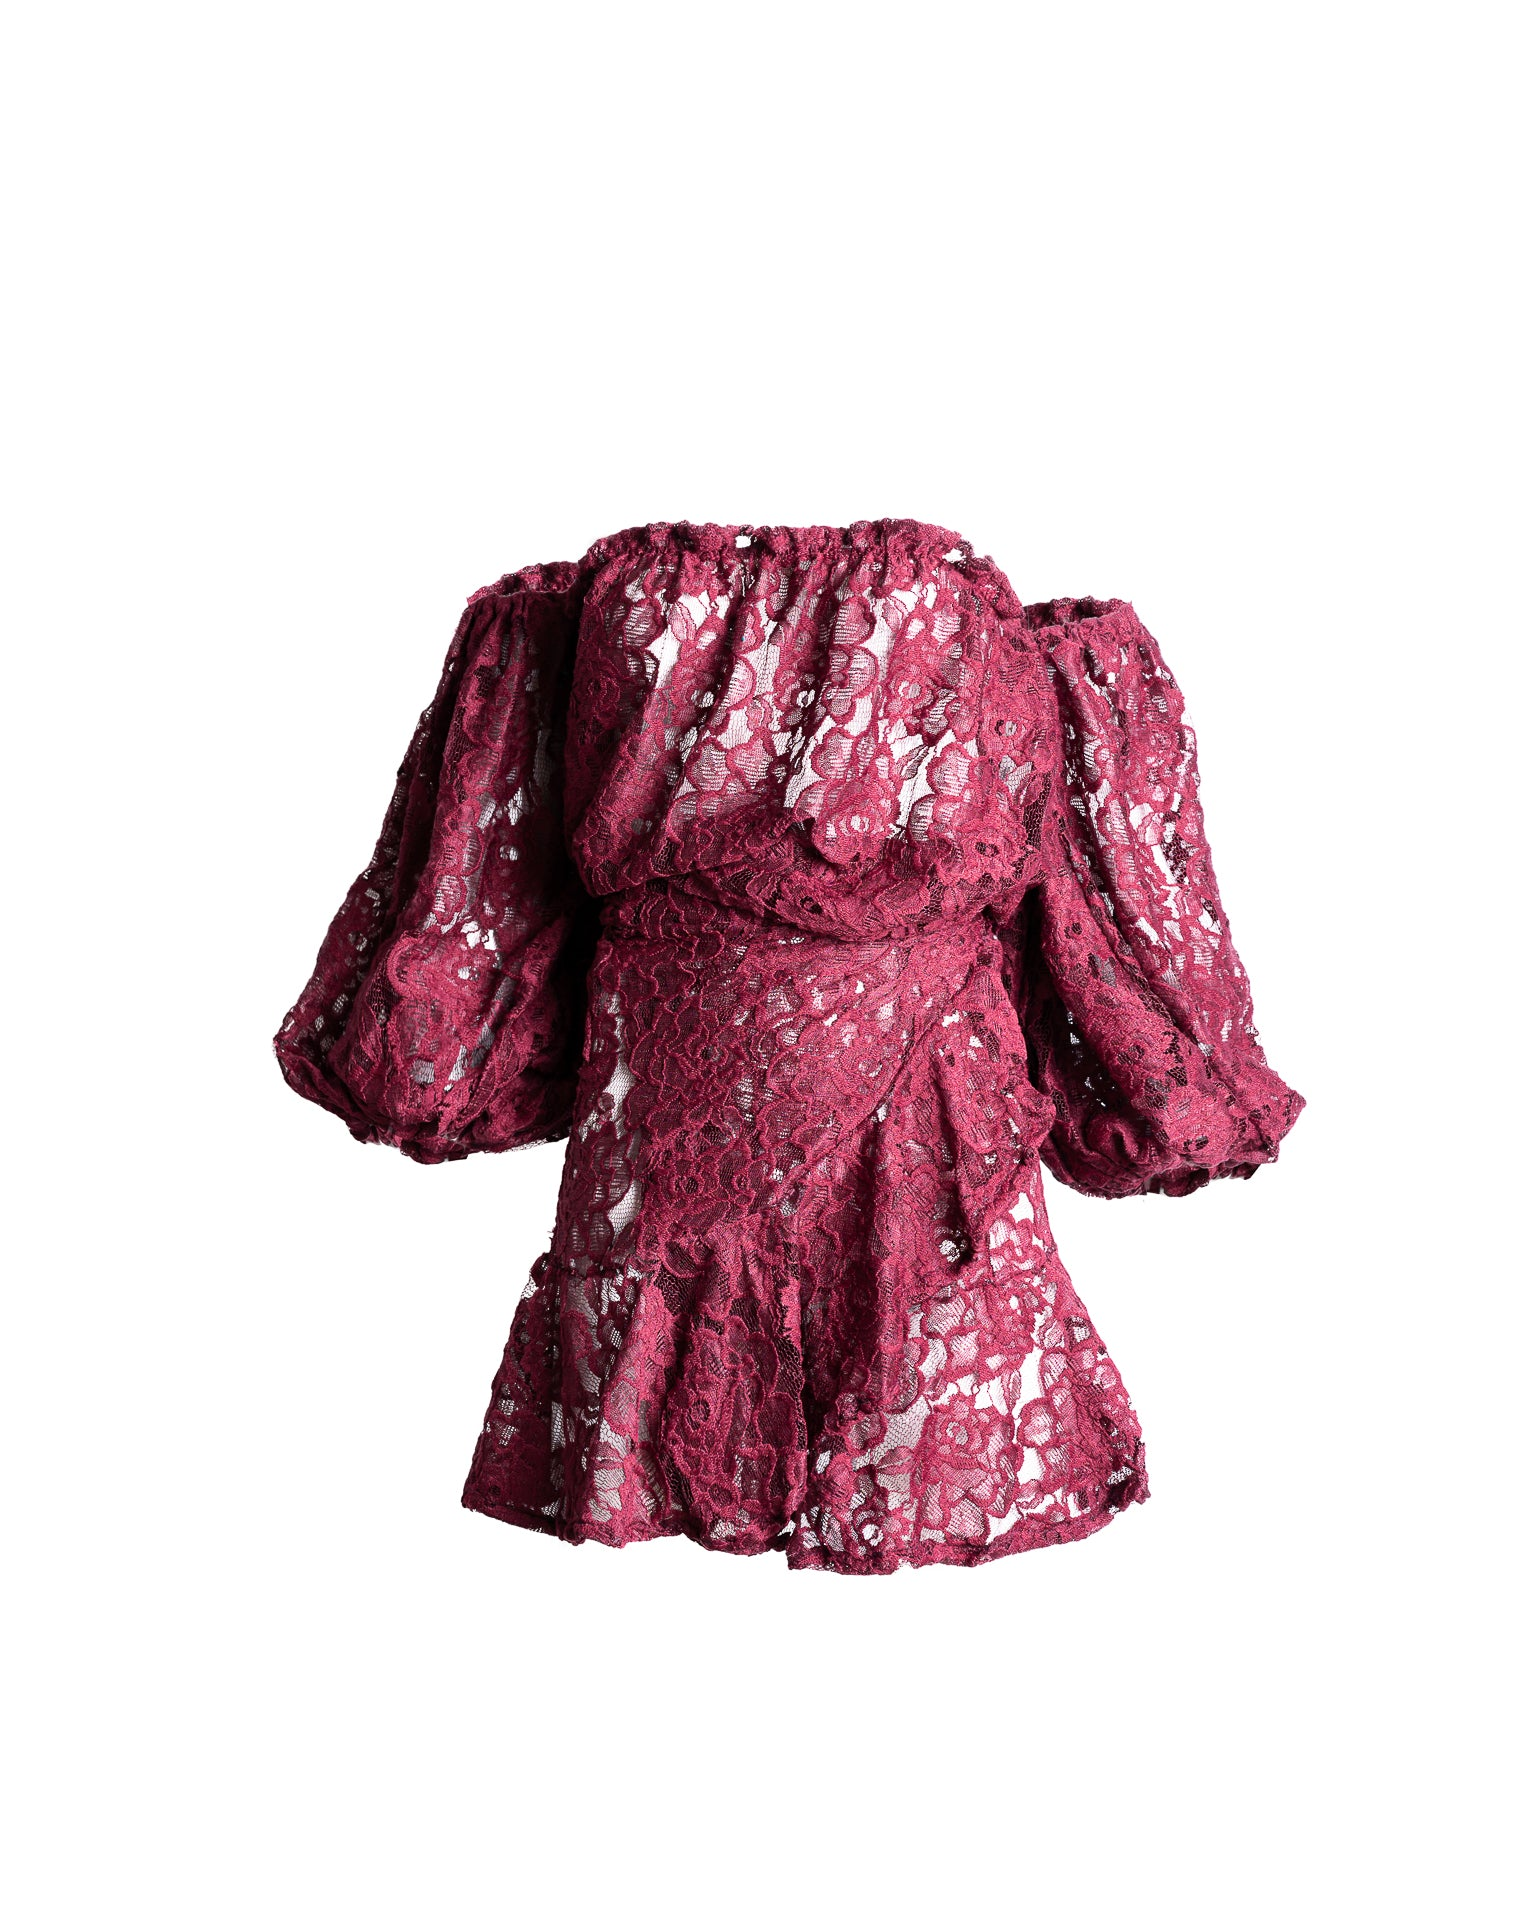 Antigua Nadia Off Top Burgundy Lace